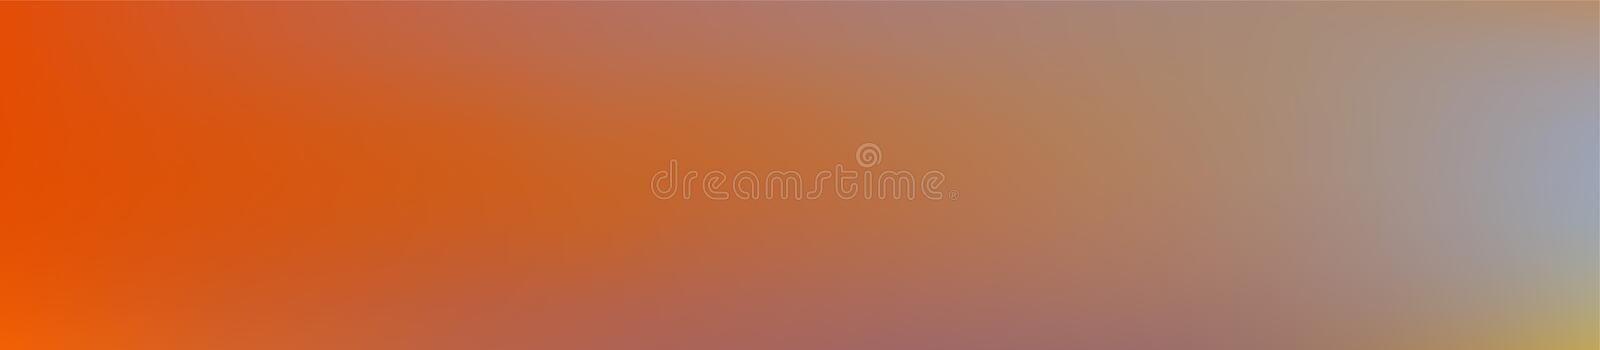 Minimal skinali background texture. royalty free illustration